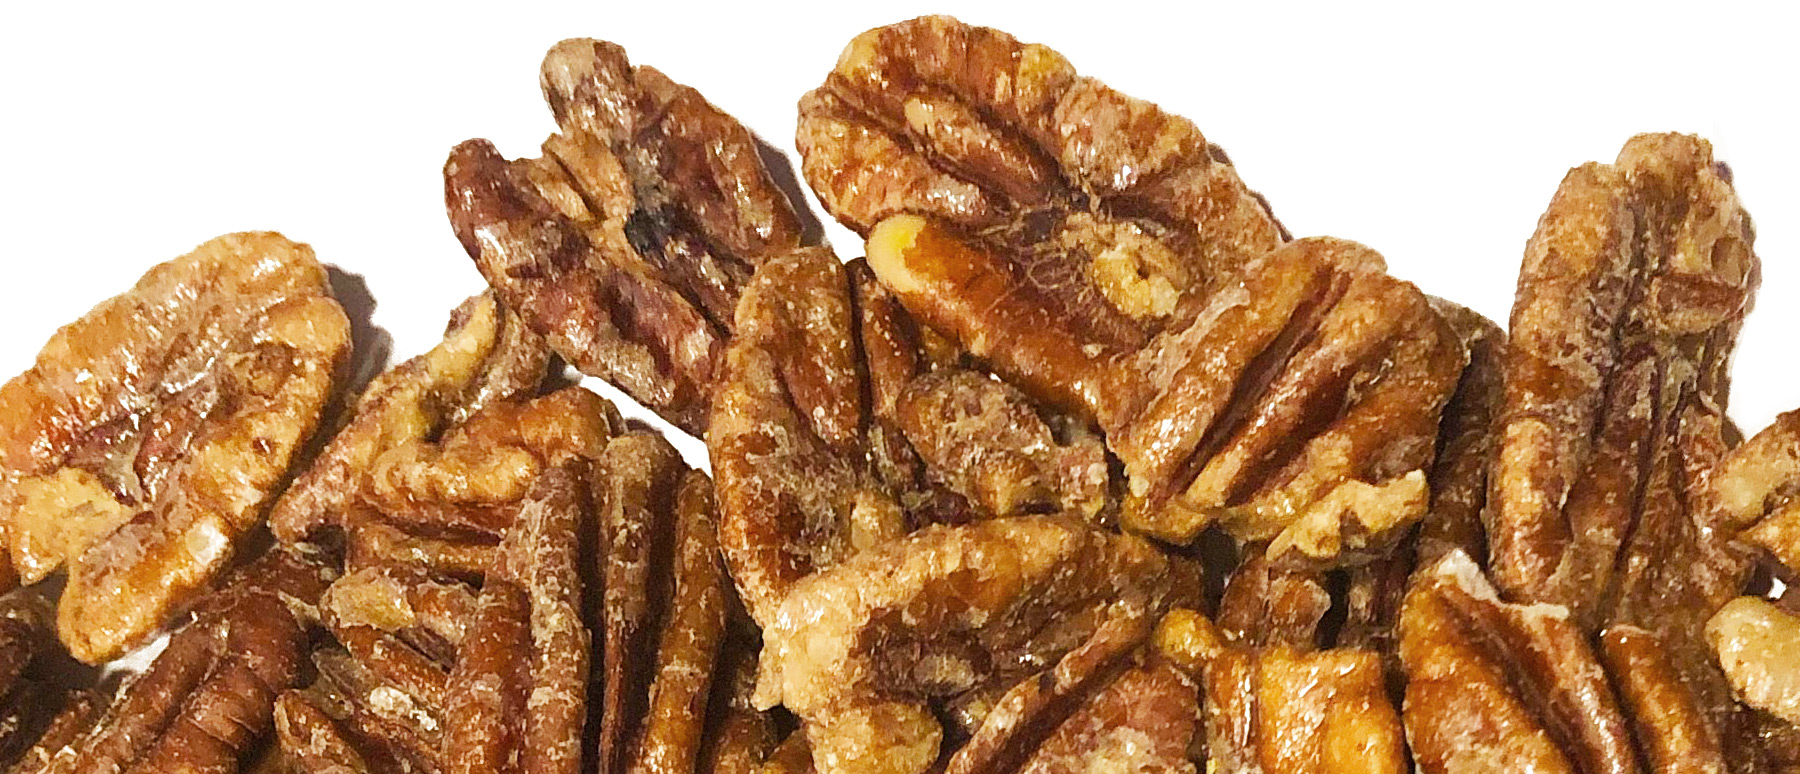 Maple Pecan - One sweet 'n' savory snack from simple ingredients like organic sprouted pecans, maple syrup, and vanilla extract